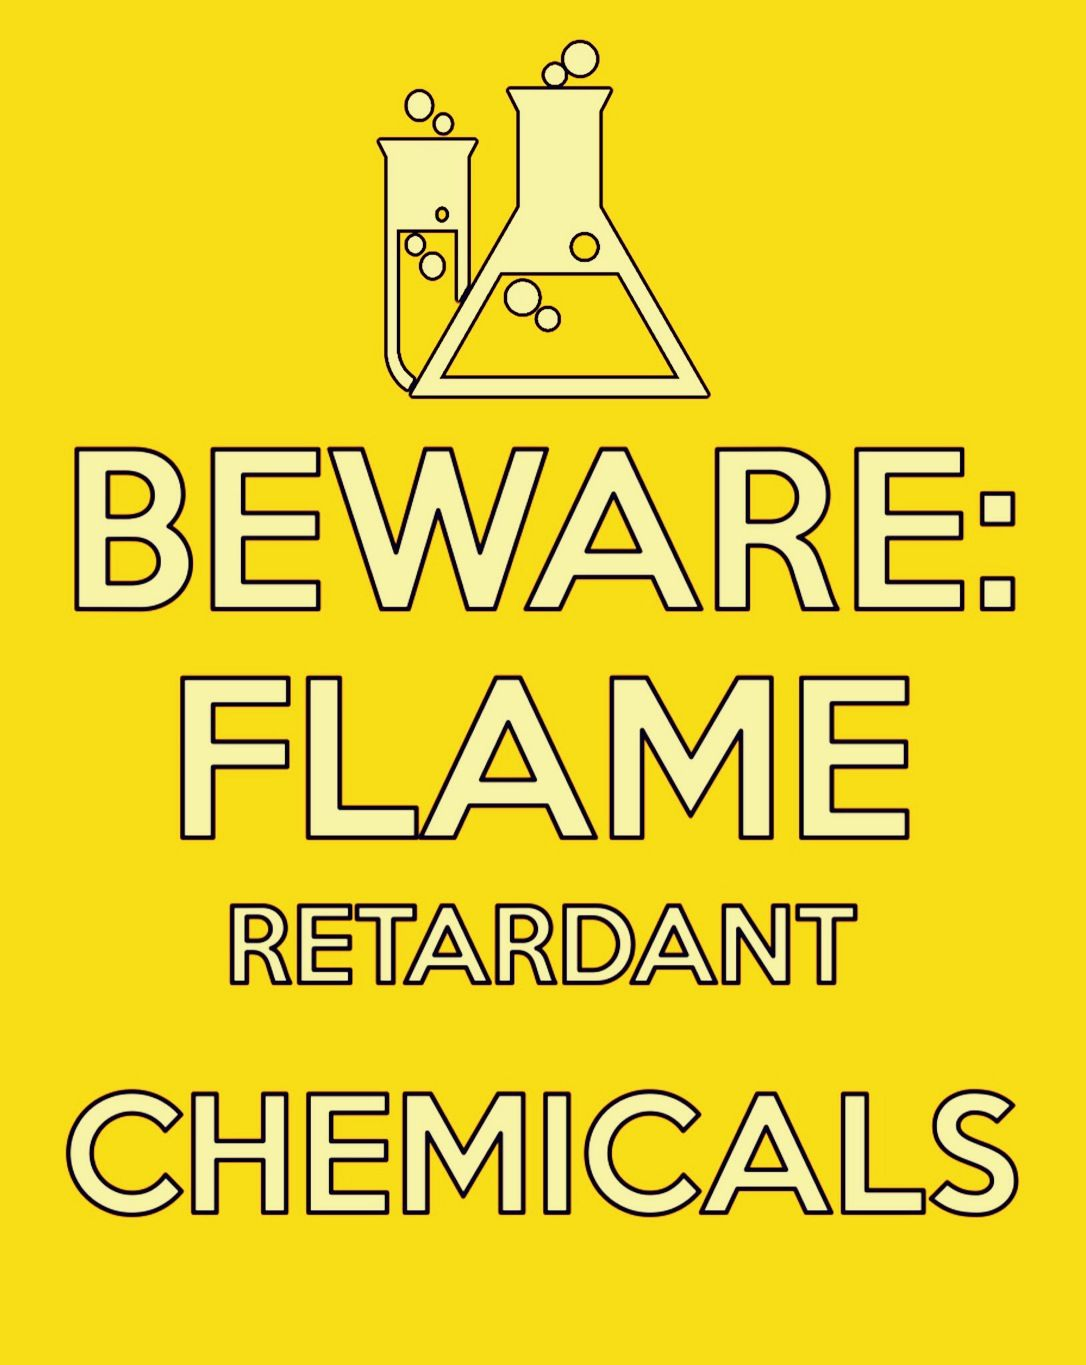 """Check out the New York Times post """"Flame Retardants Are"""